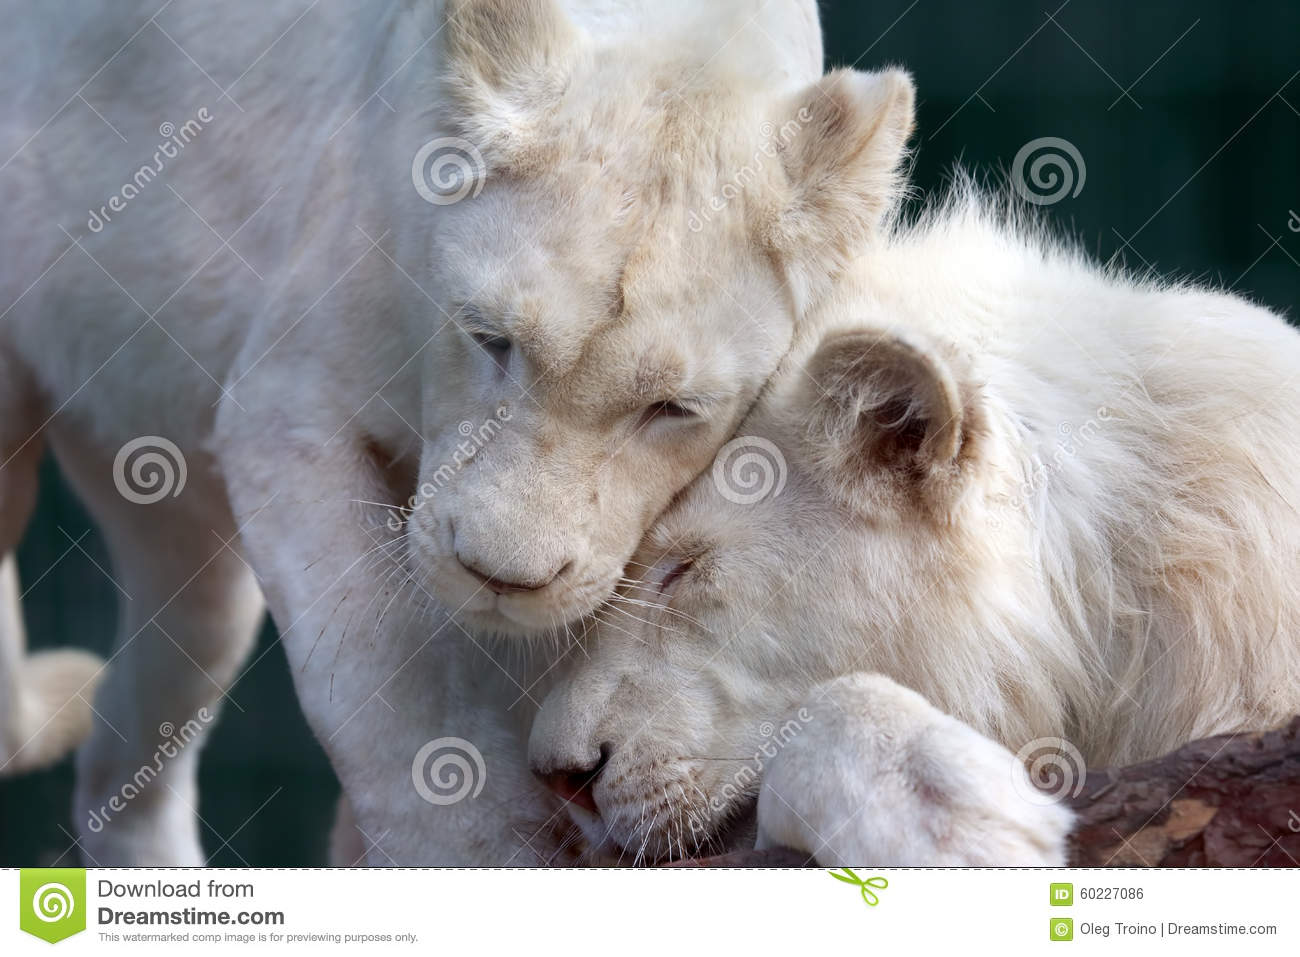 White Lion And Lioness Show Each Other Tenderness And Love Stock.